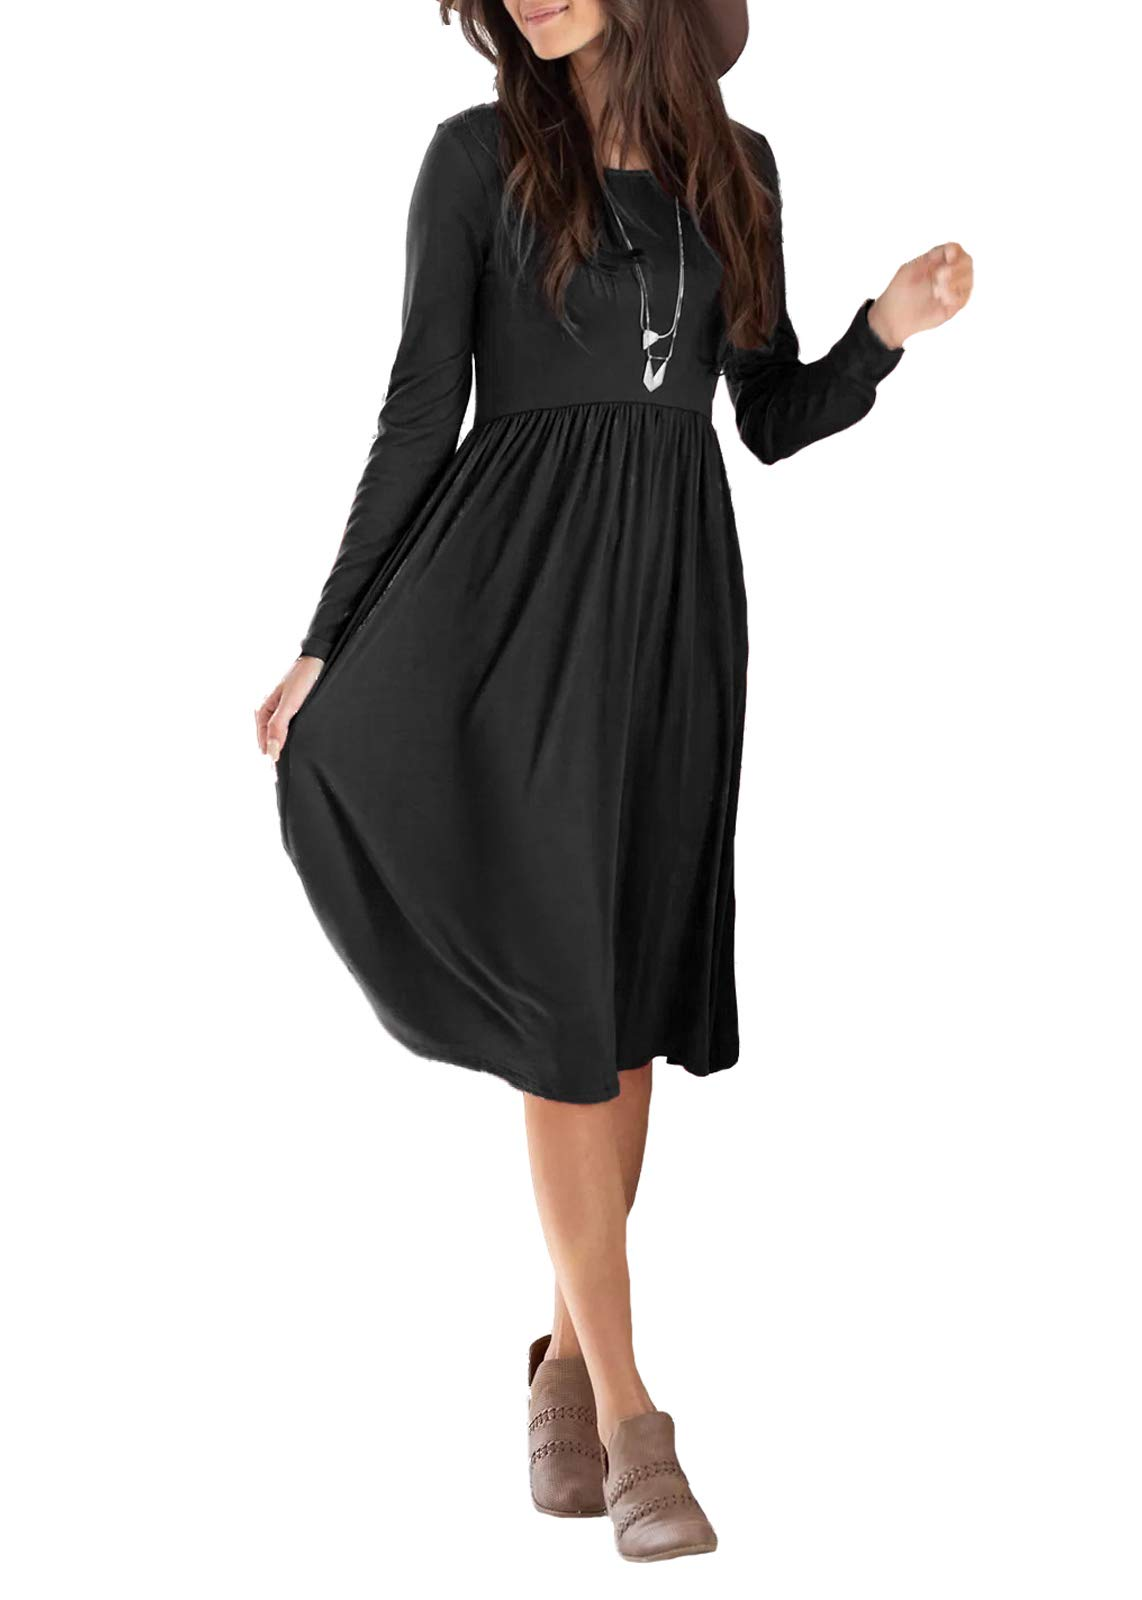 Dressation Women's Long Sleeve Pleated Loose Swing Casual Dress with Pockets Knee Length Black